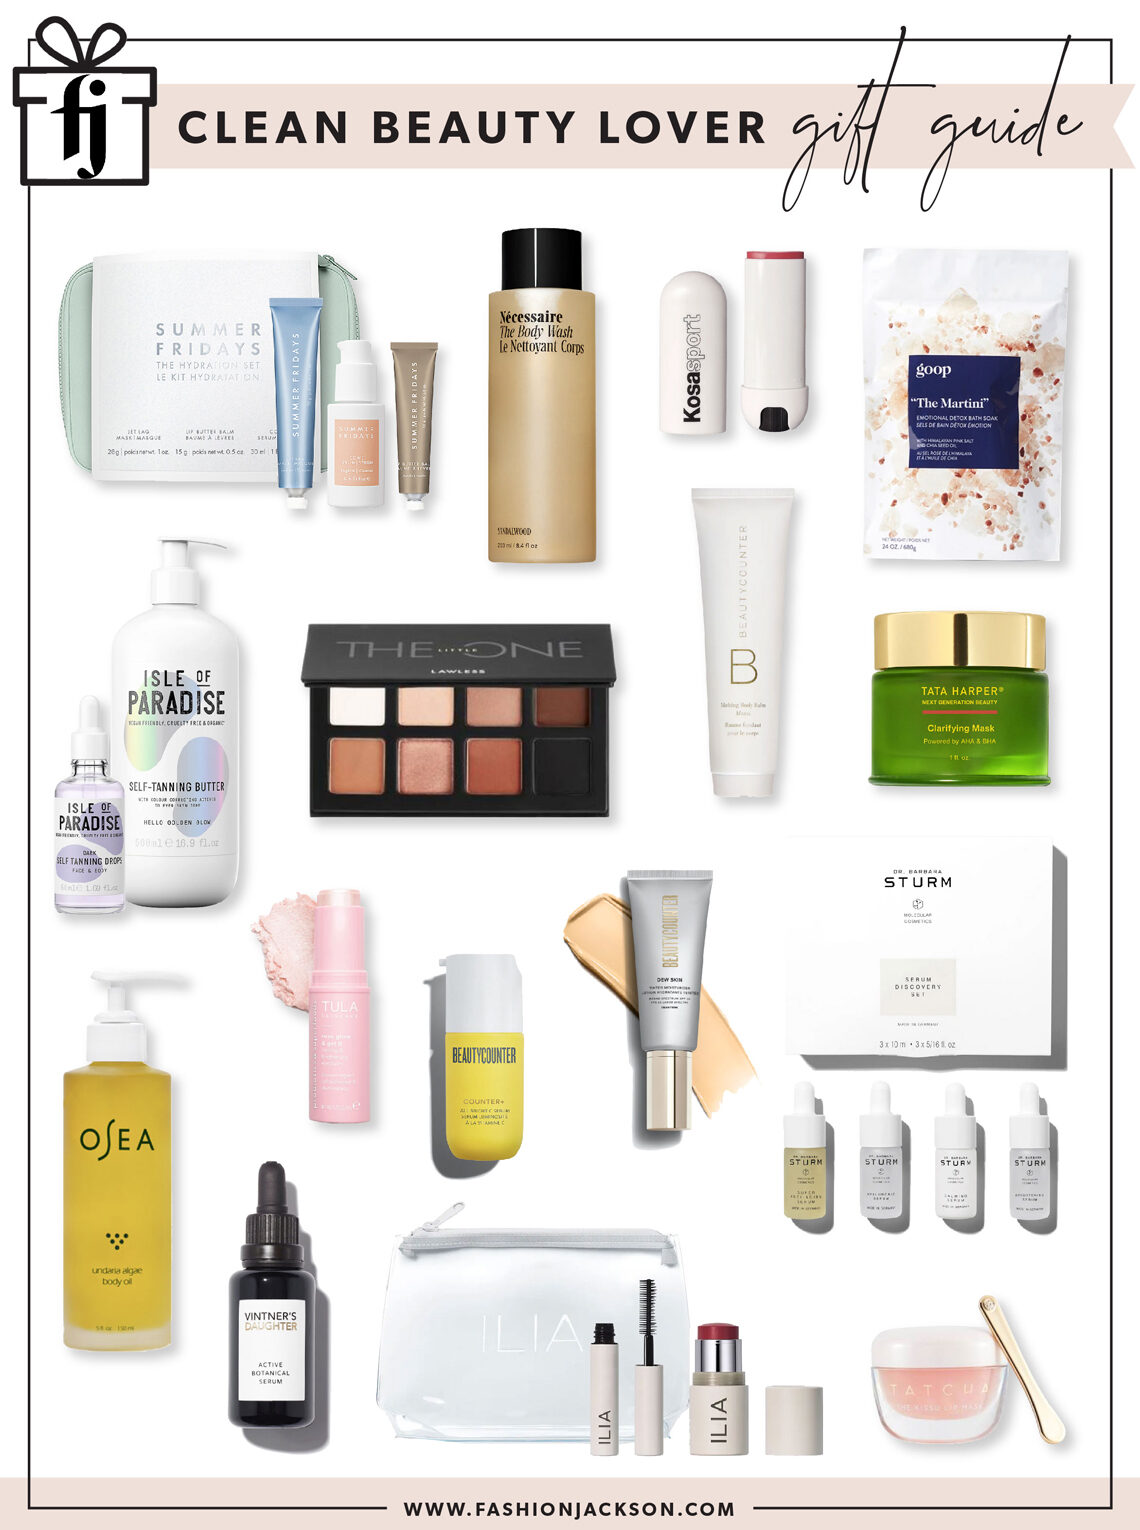 Fashion Jackson Holiday 2020 Clean Beauty Gift Guide